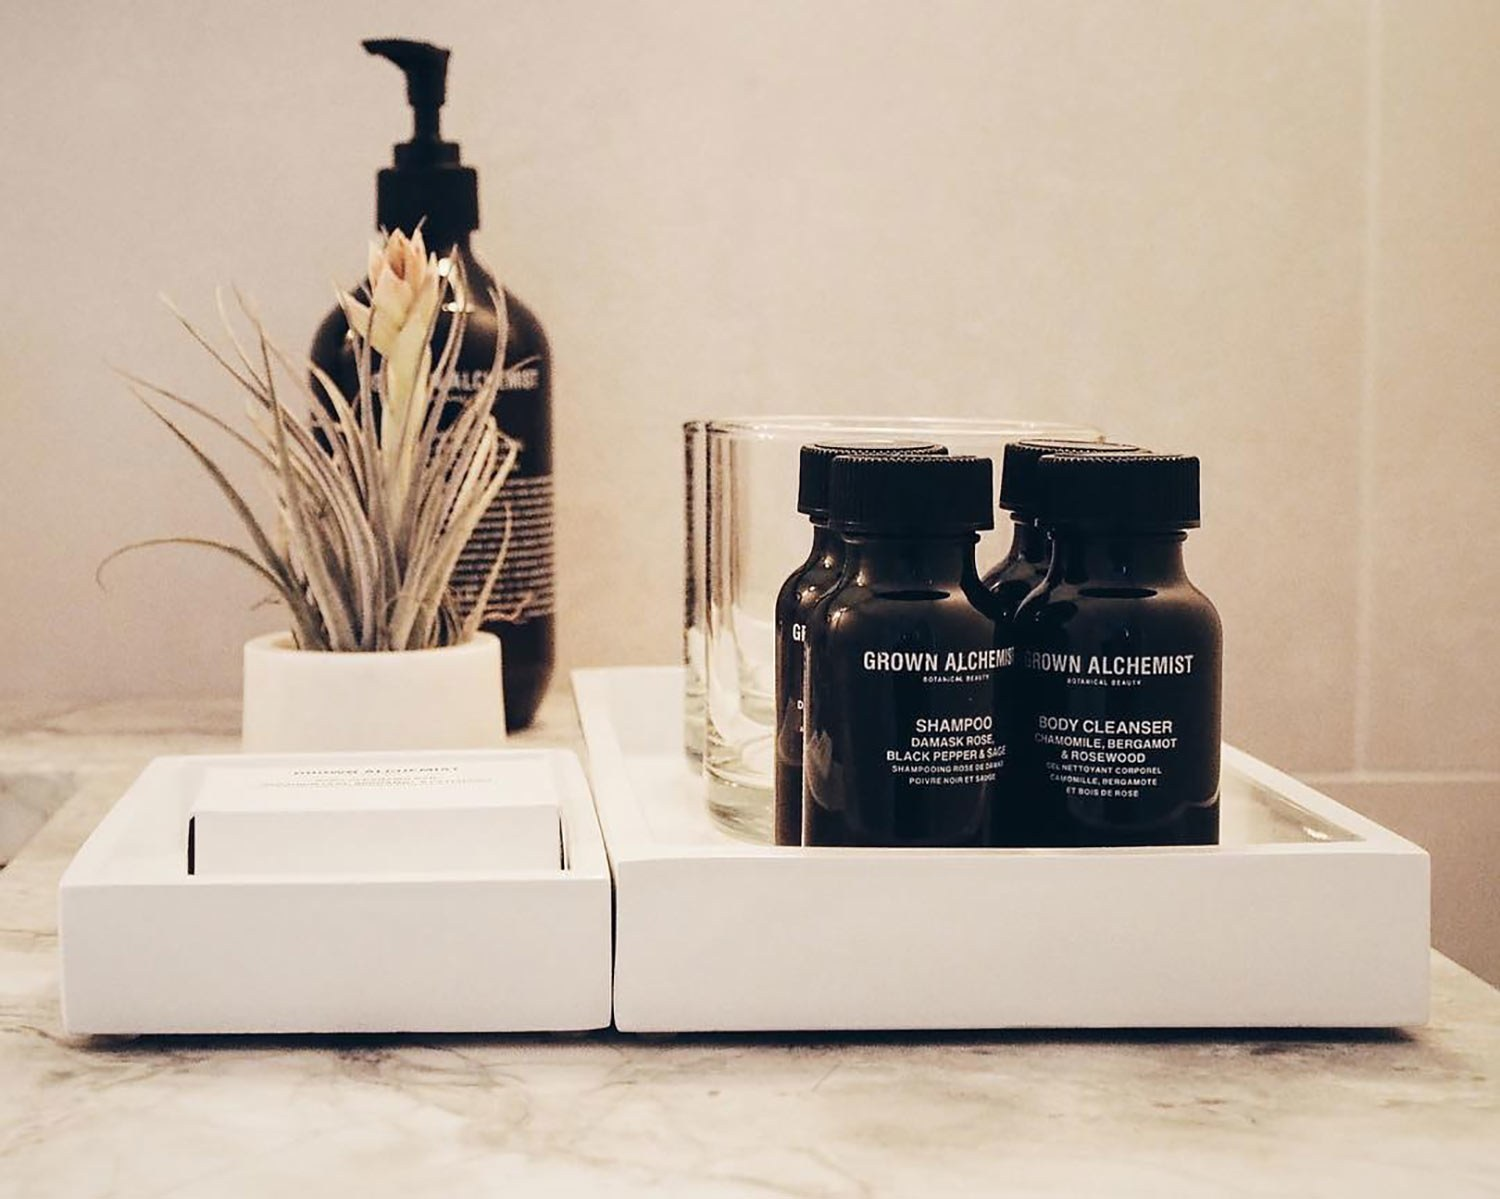 Spa & hotel amenities